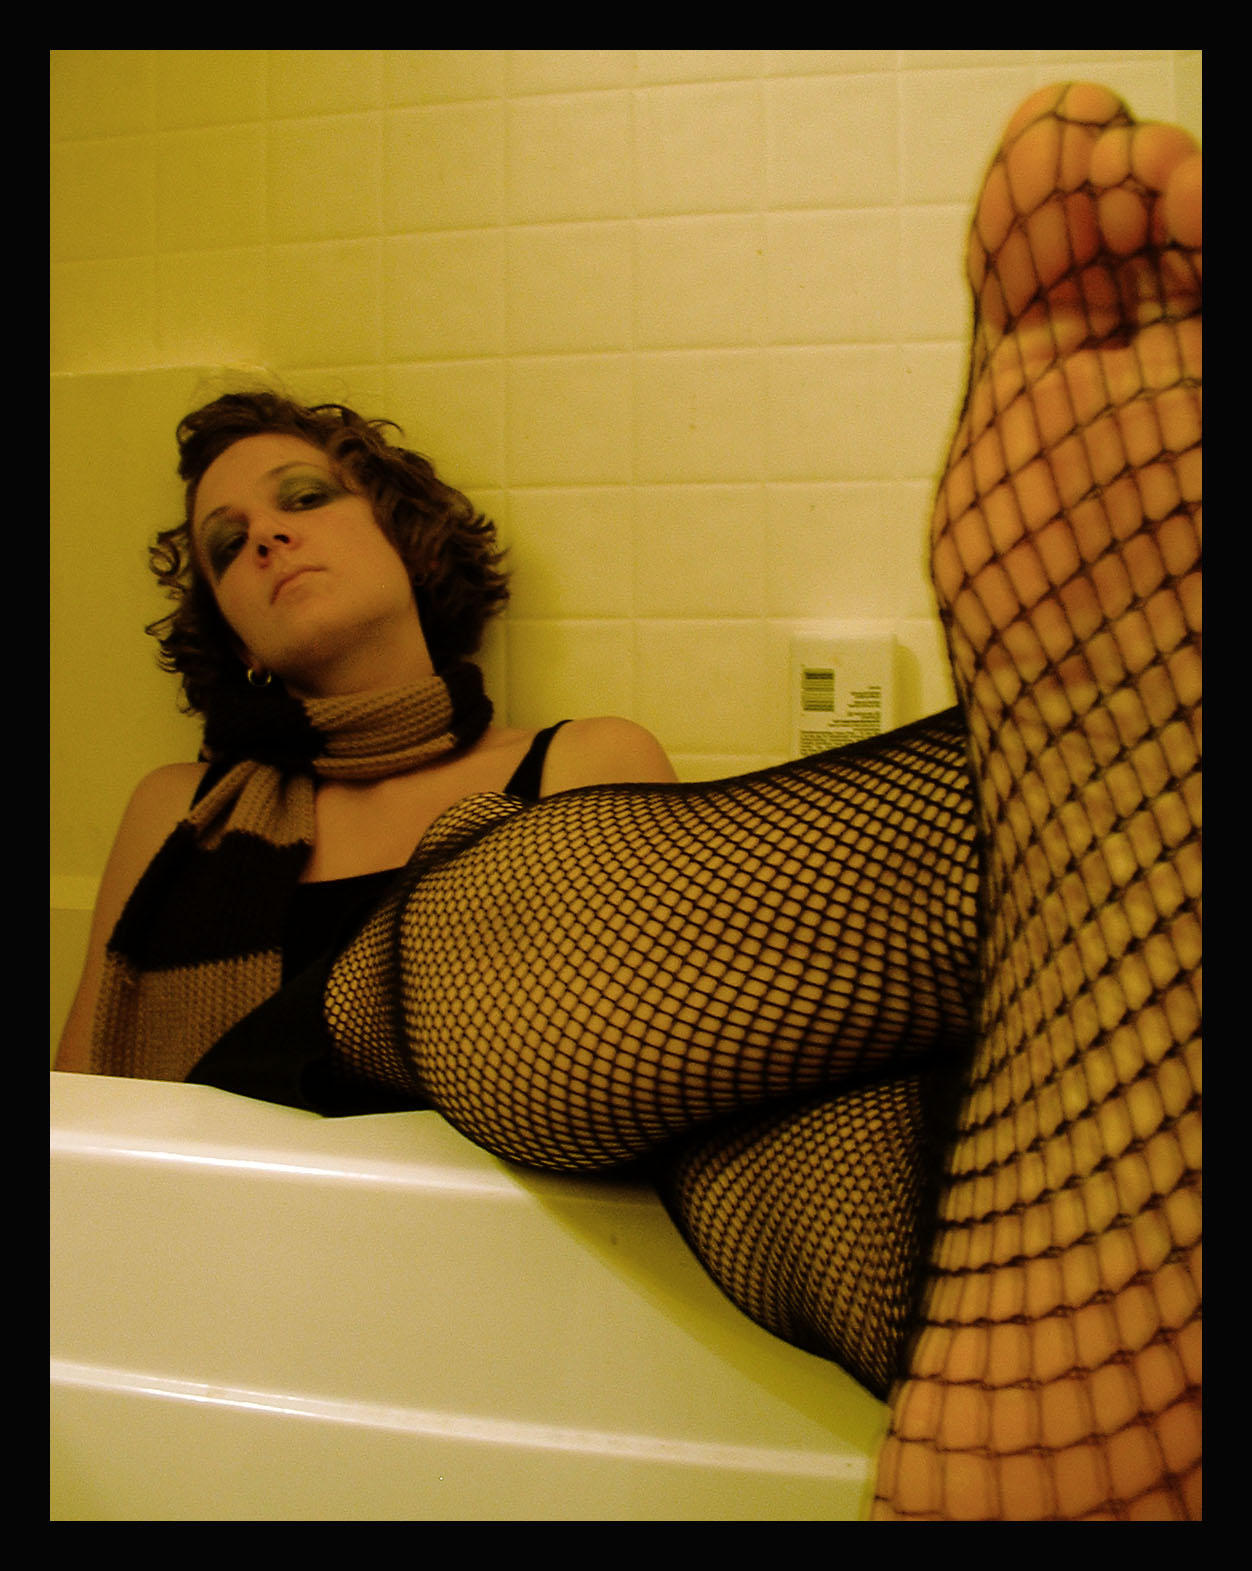 fishnets by wreckmystockingsinaj